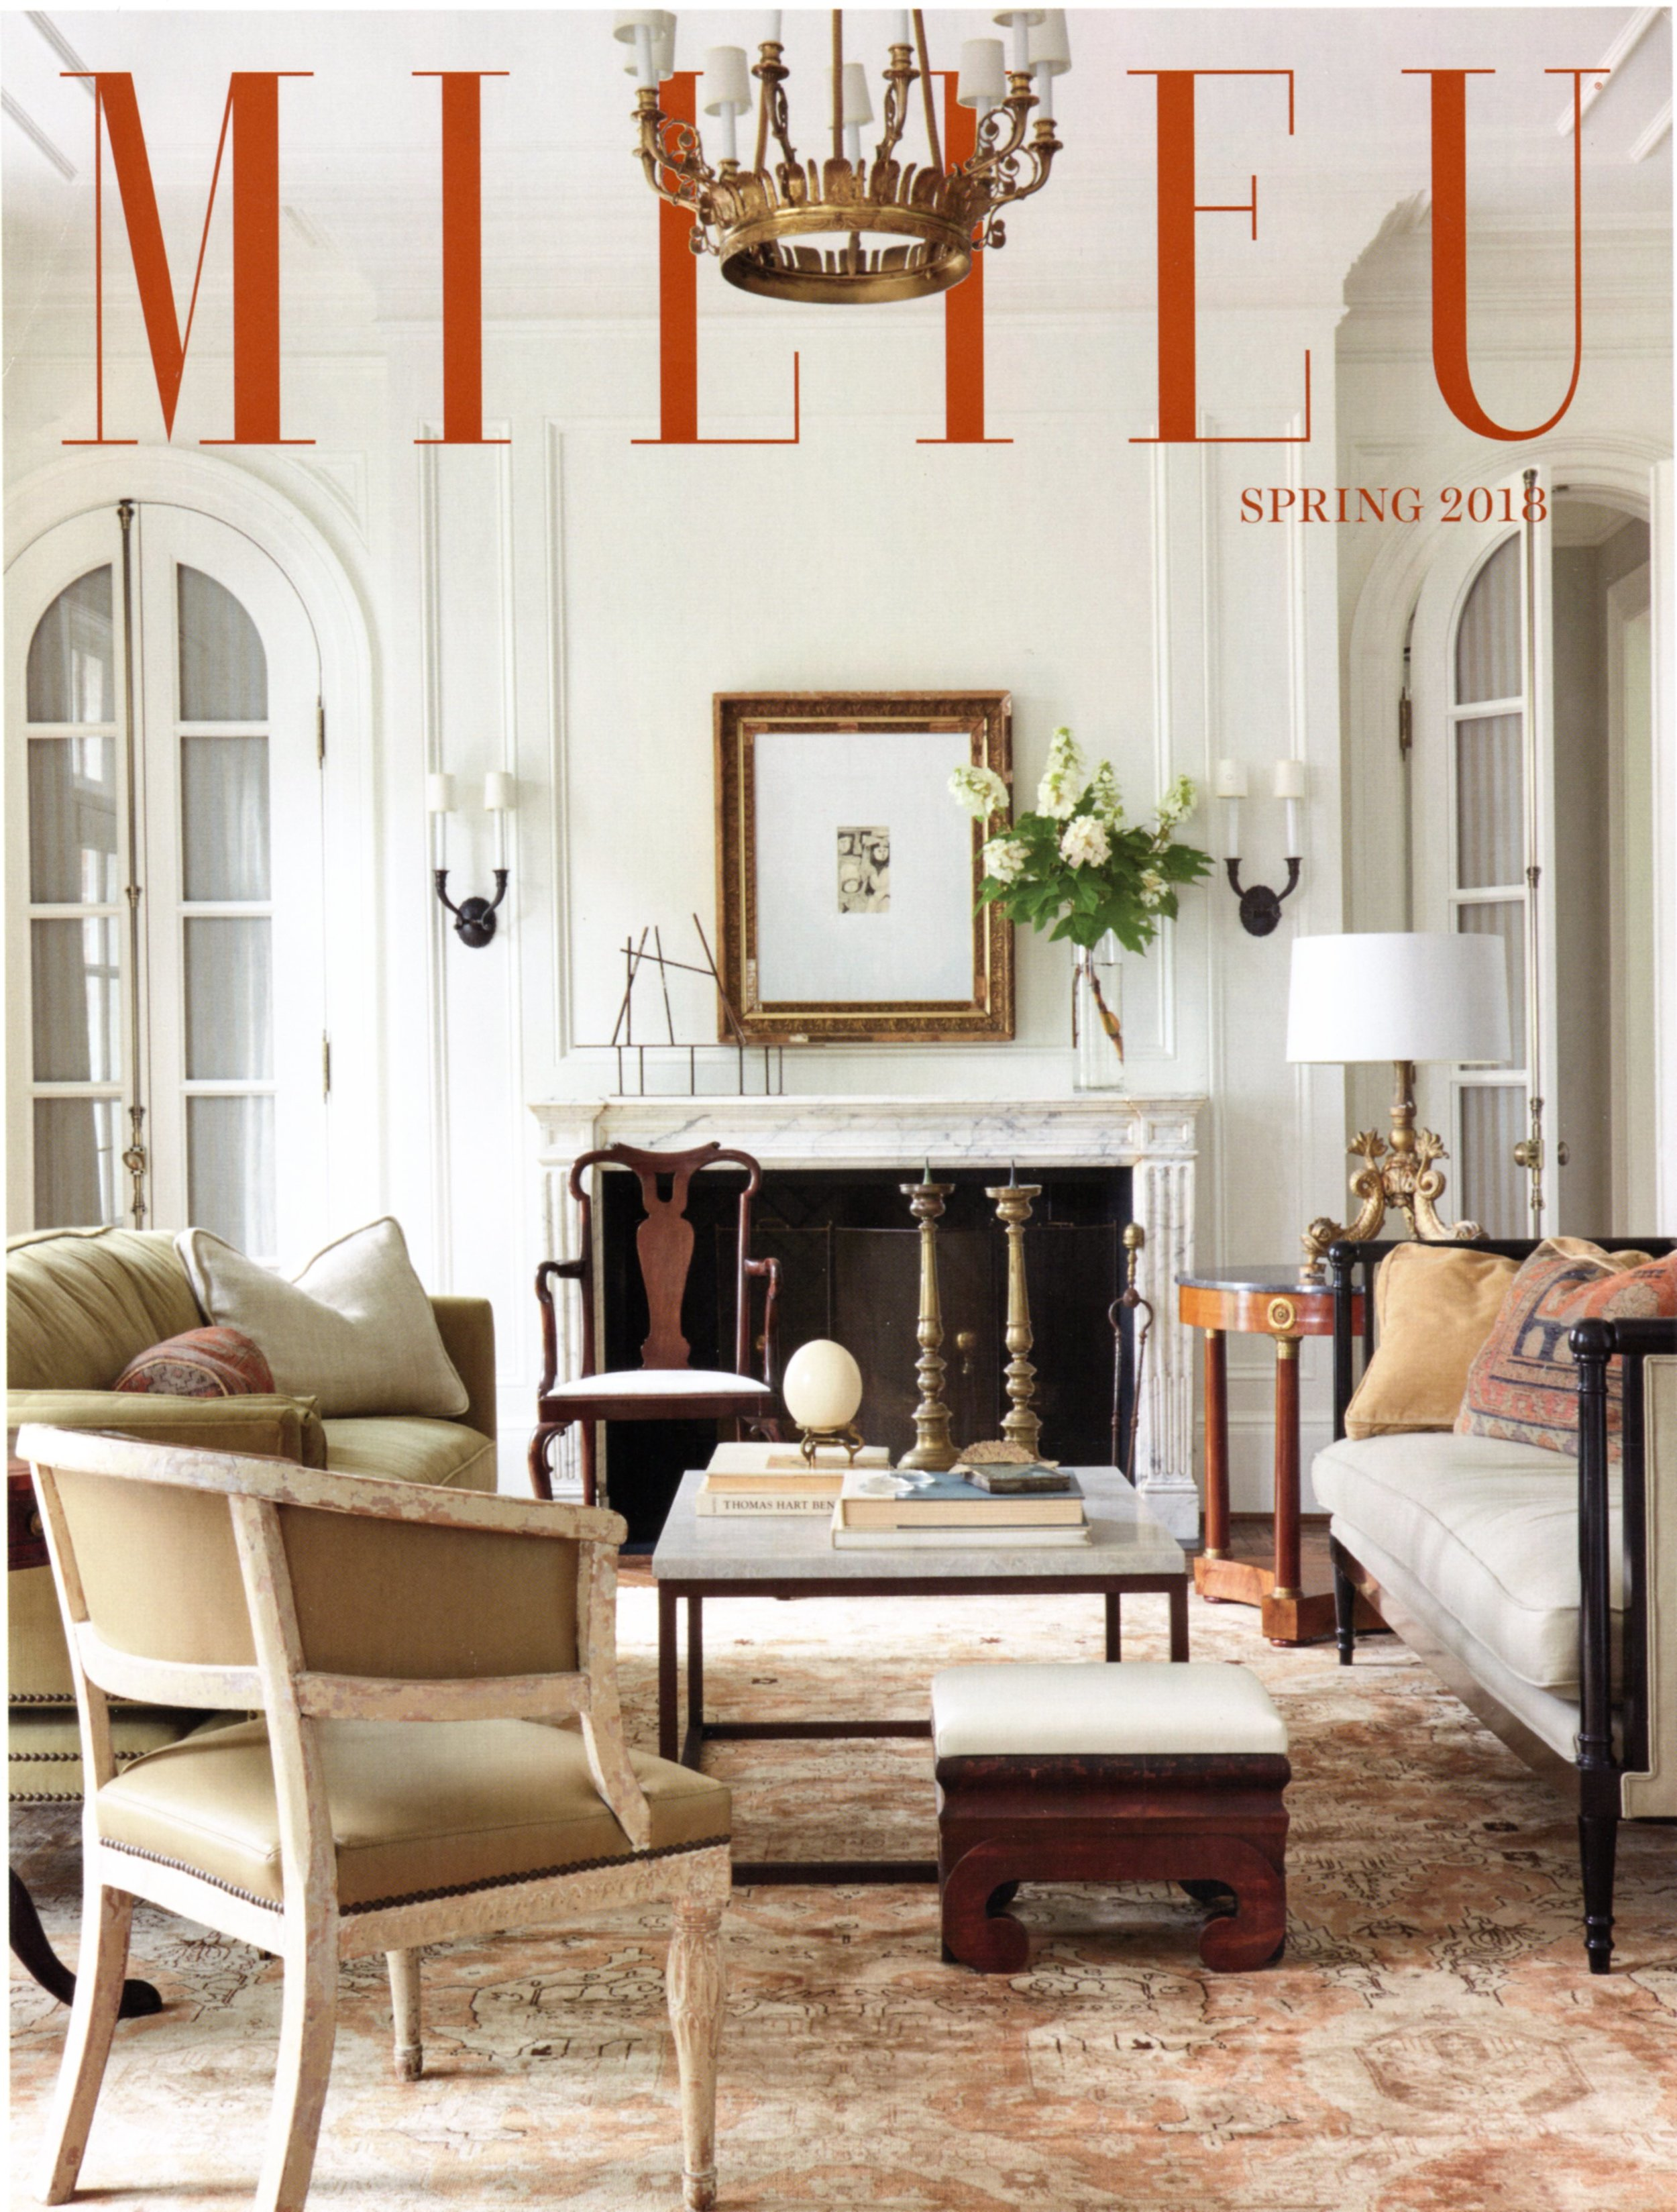 Pennoyer Newman featured in Milieu Spring 2018 issue.